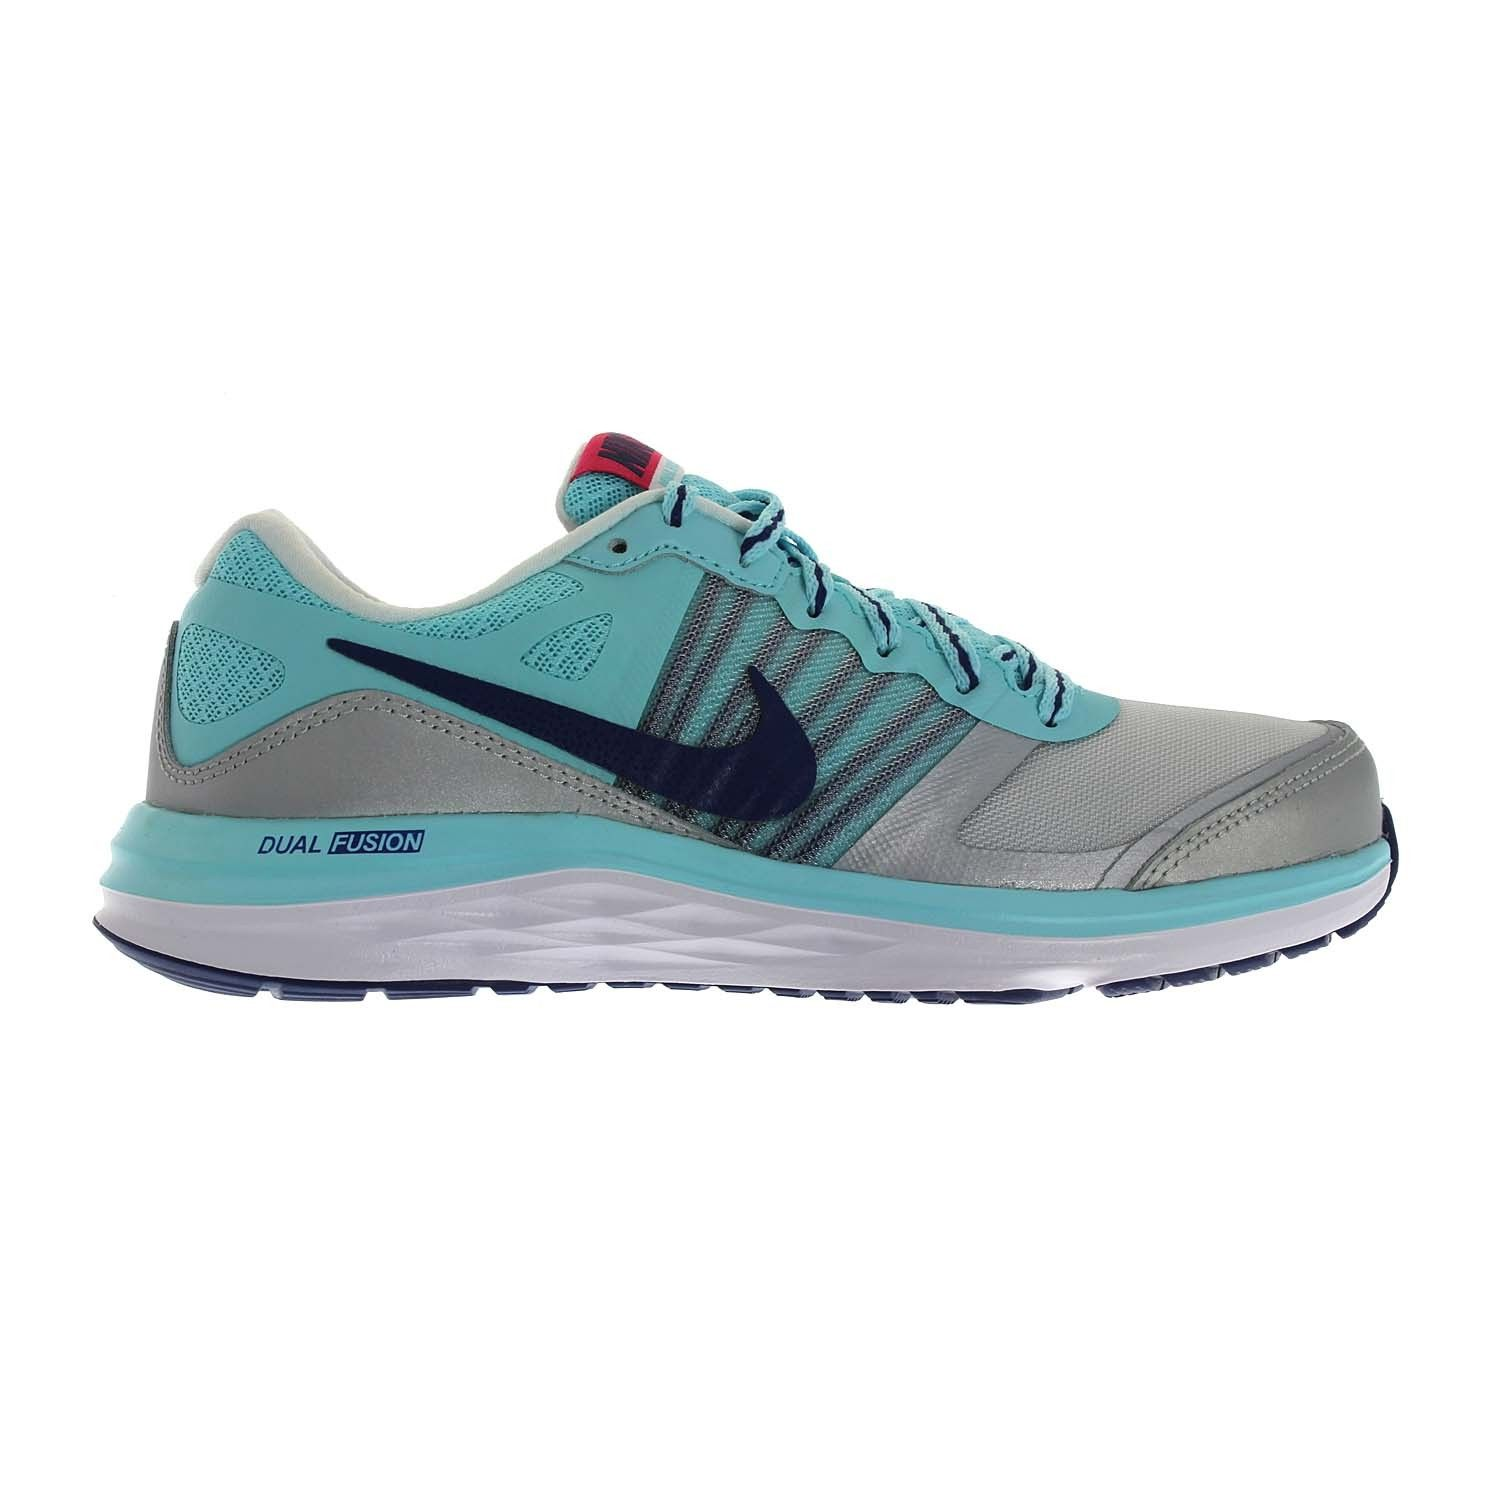 The Nike Dual Fusion X Running Shoe is made with dual-density cushioning  and a lightweight, breathable upper for impact protection and cool comfort  during ...